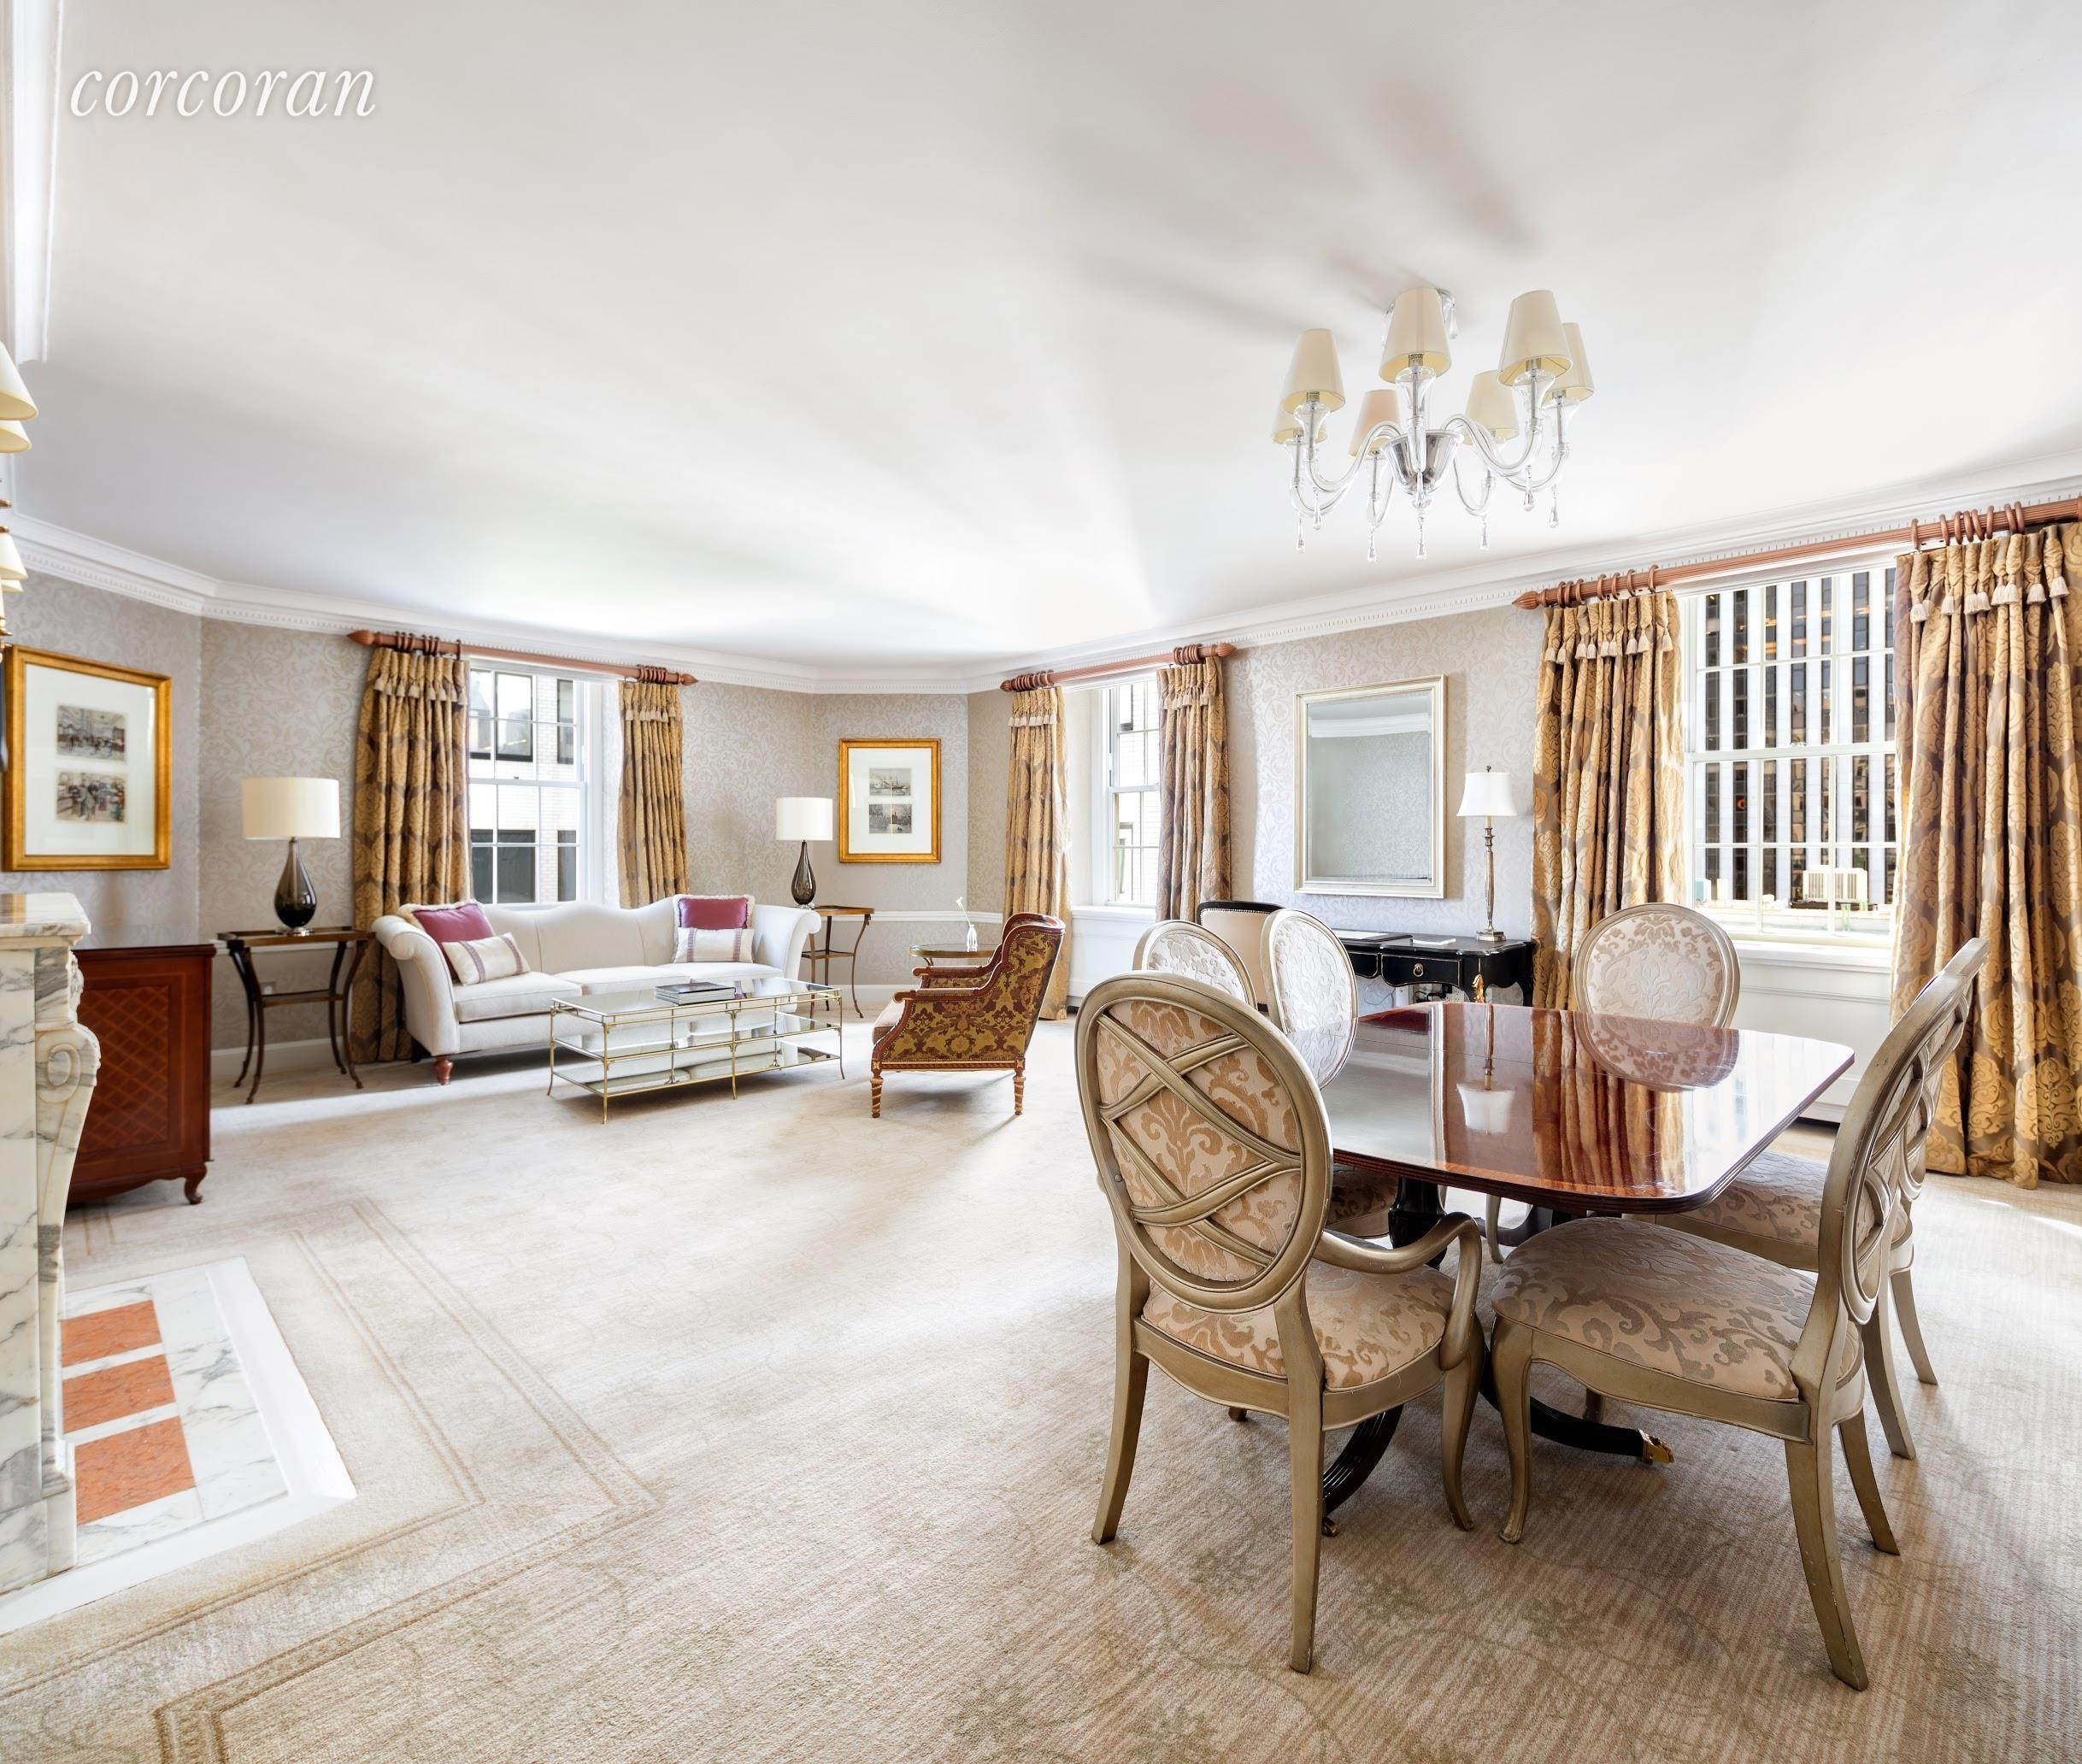 Co-op property for Rent at The Pierre 795 Fifth Avenue, 17 New York, New York,10065 United States